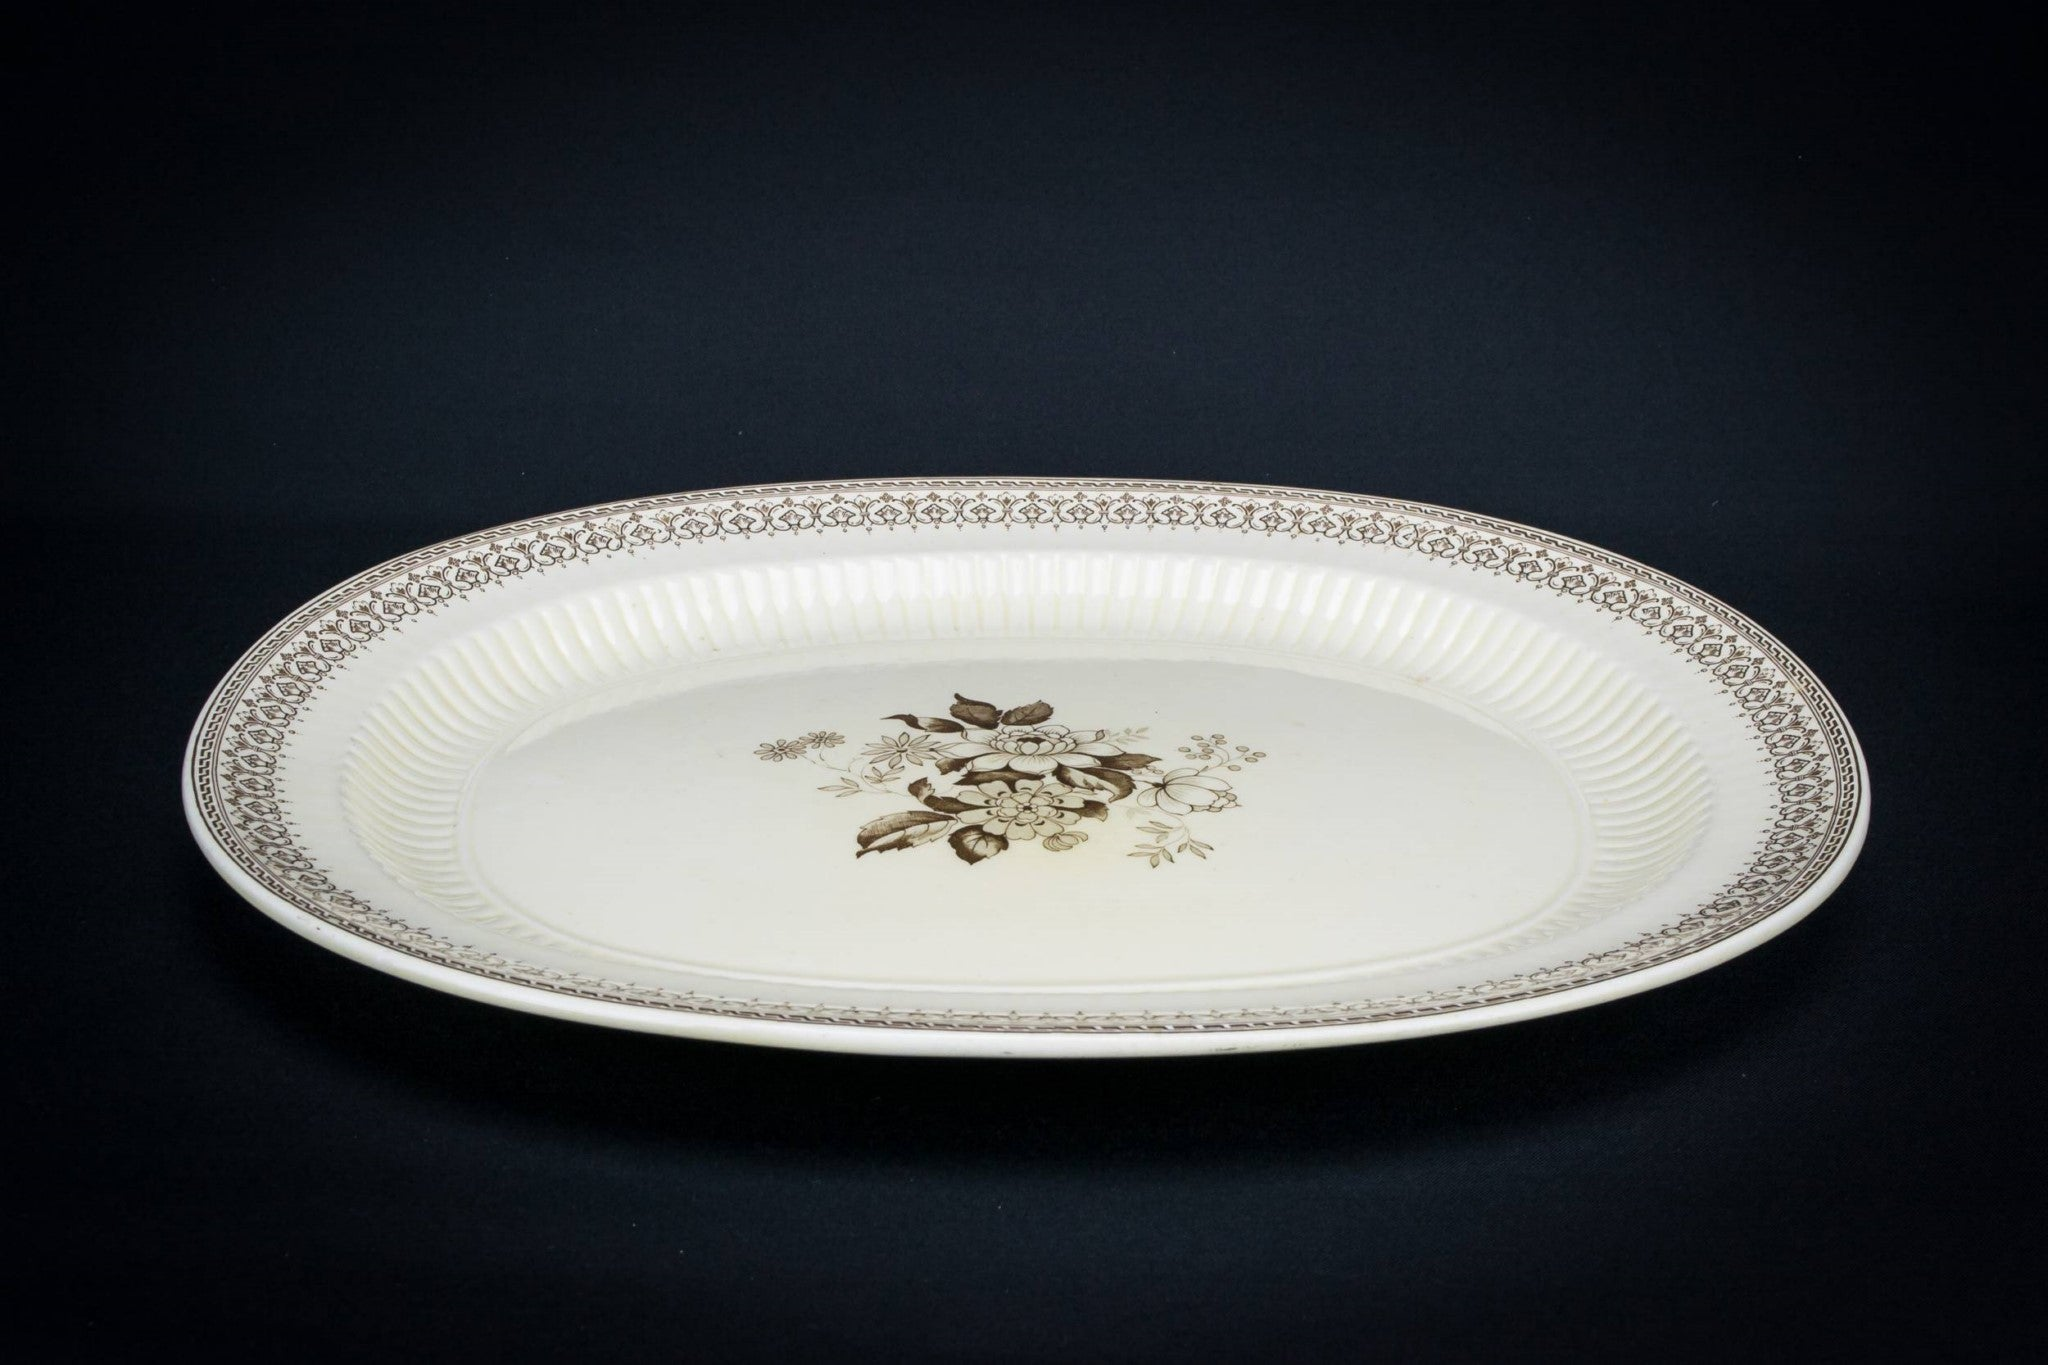 Large brown serving platter